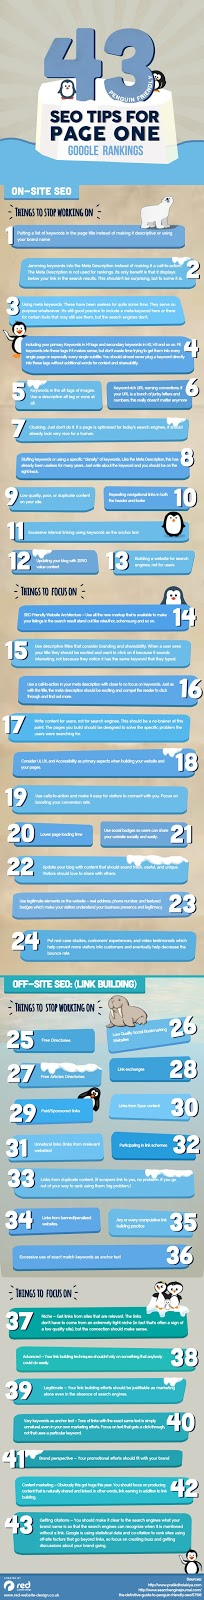 43 SEO Tips For Page One Google Rankings Infographic